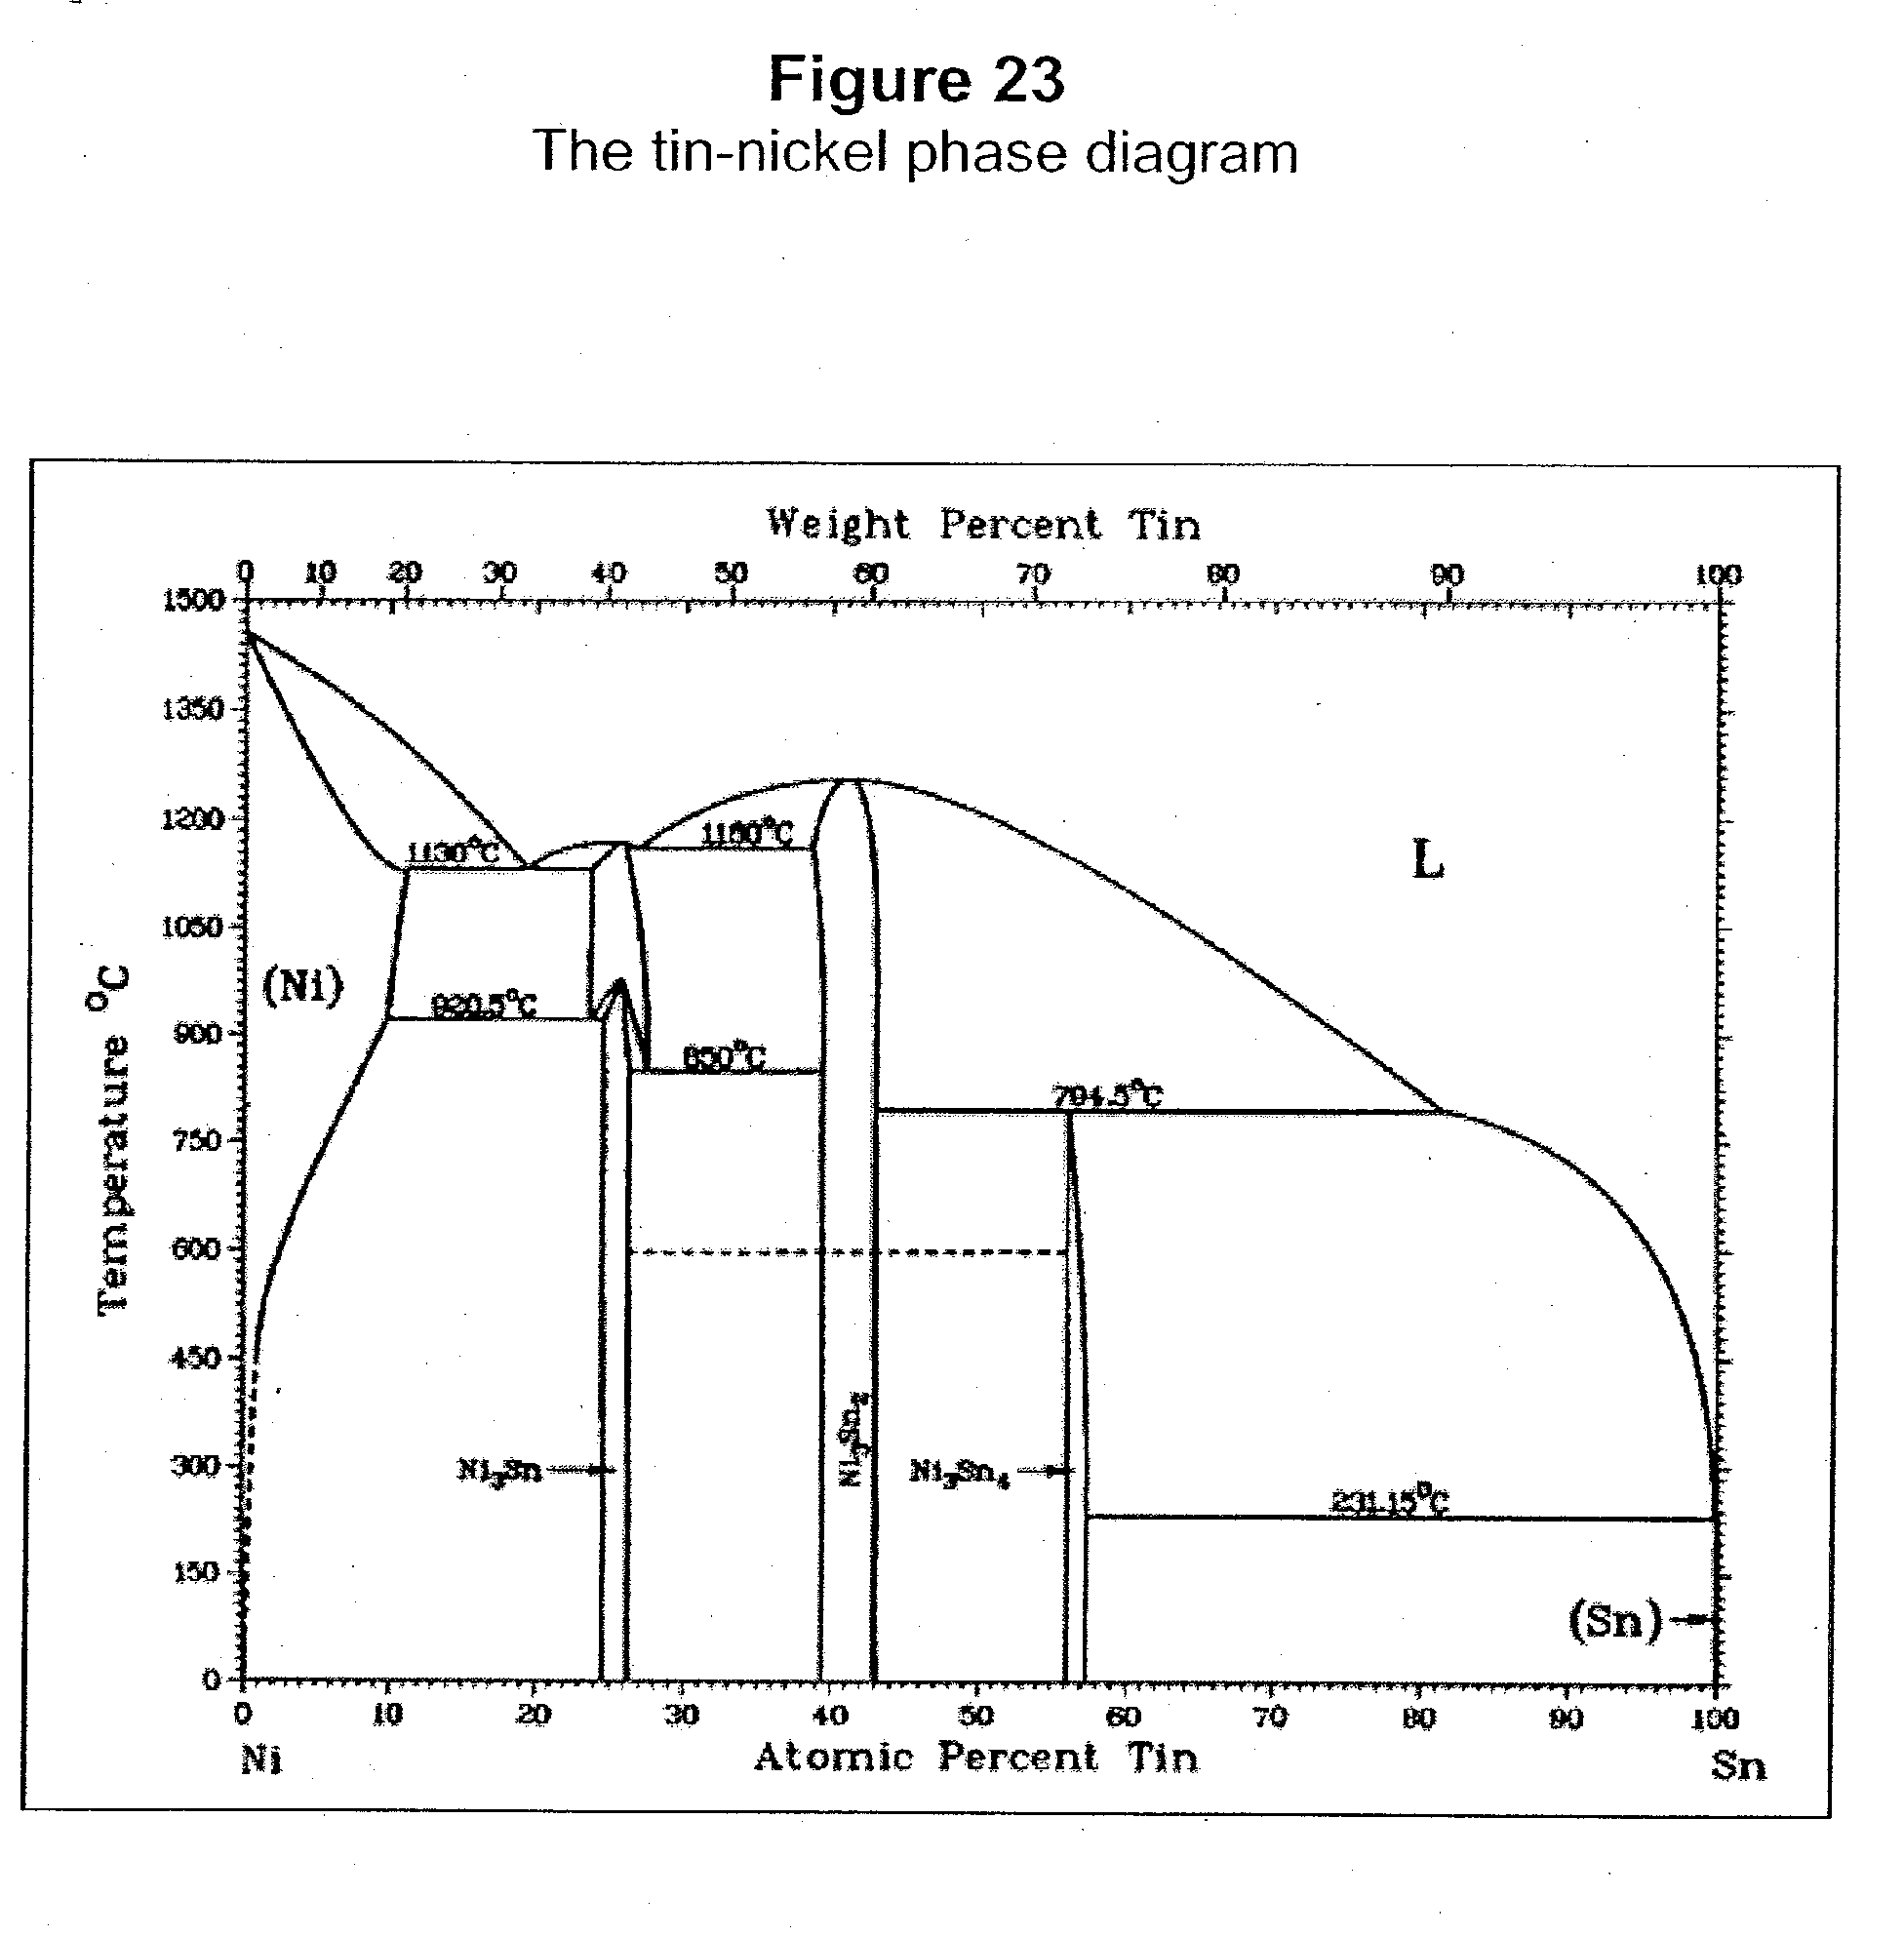 gold silver copper phase diagram wiring for headlight dimmer switch patent ep1405821a2 wafer level packaging technique